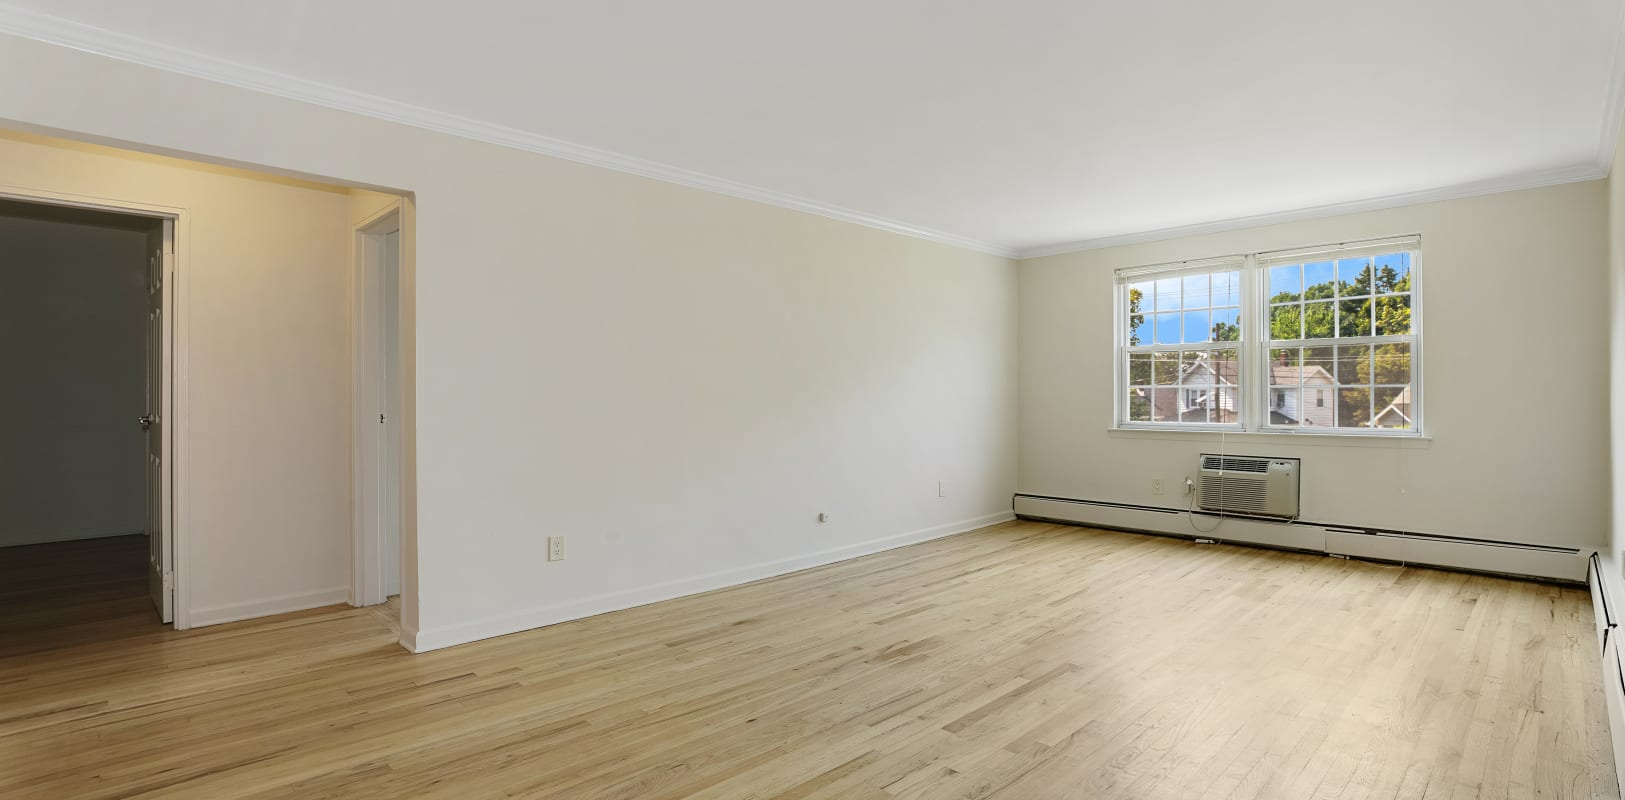 Large empty living room ready for move in at Parkway East Apartments in Caldwell, New Jersey